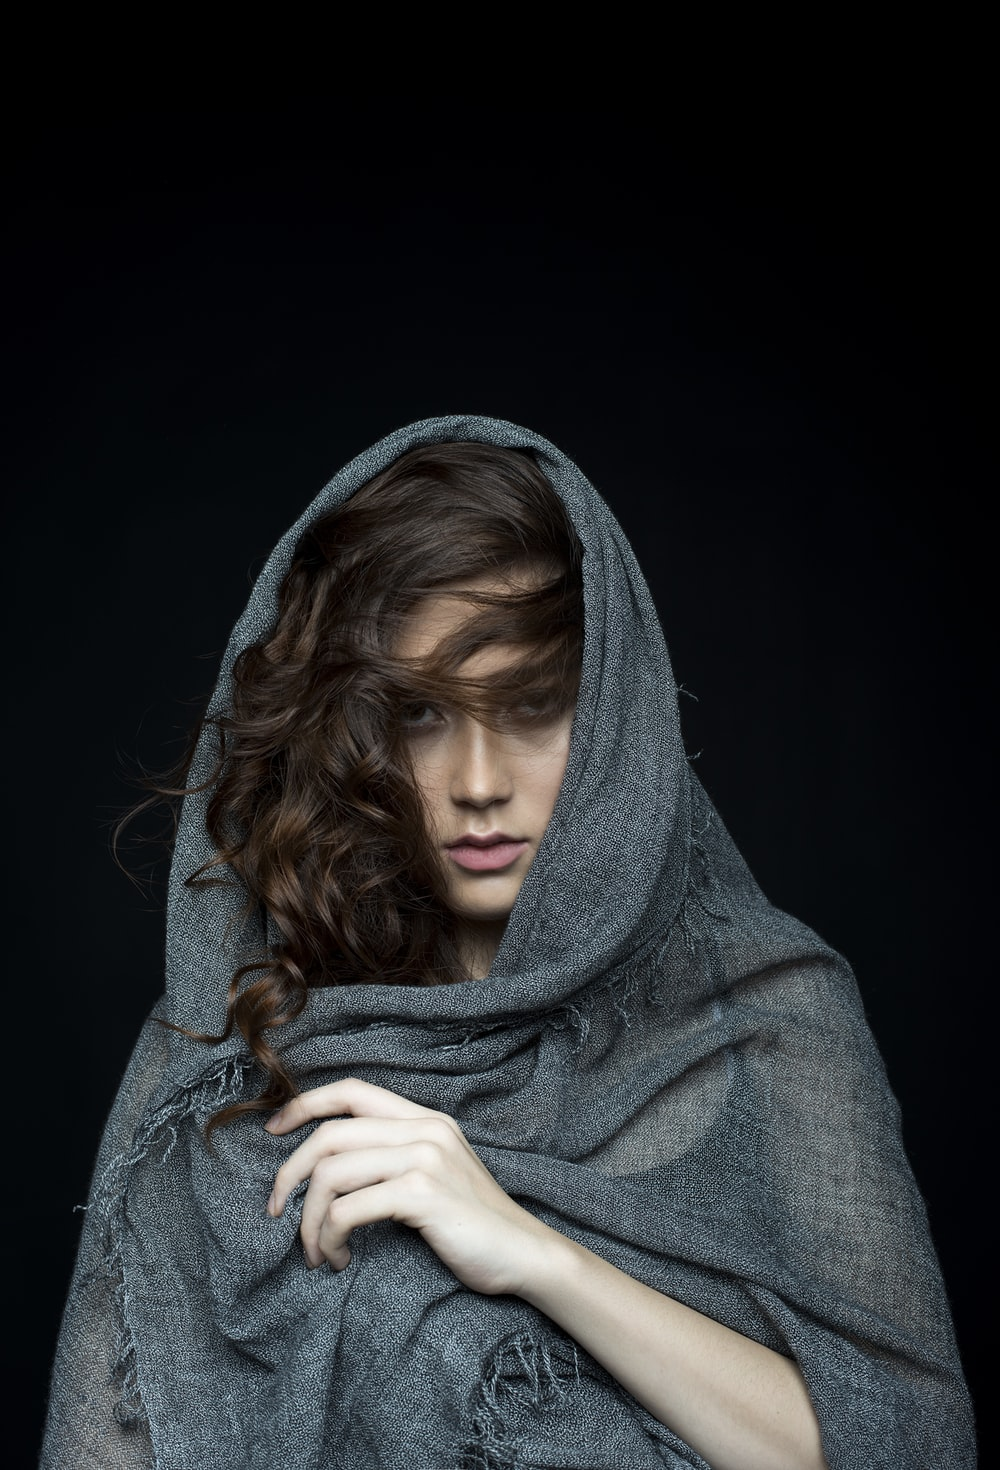 woman wearing black scarf